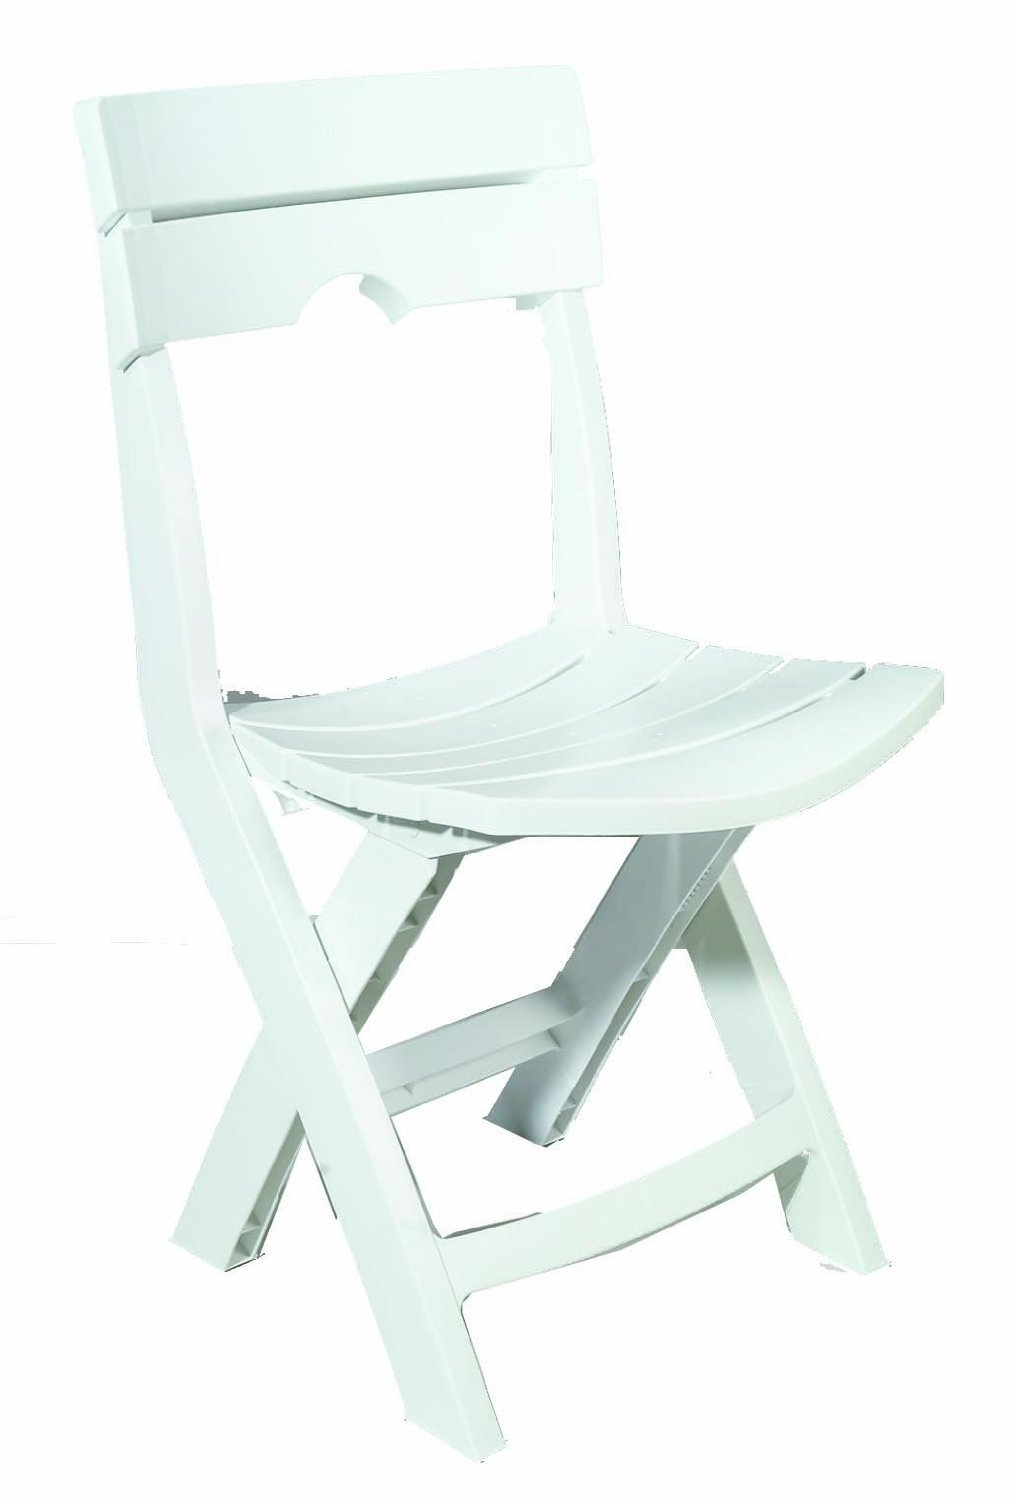 Adams Manufacturing 8575-48-3700 Quik-Fold Chair, White by Adams Manufacturing